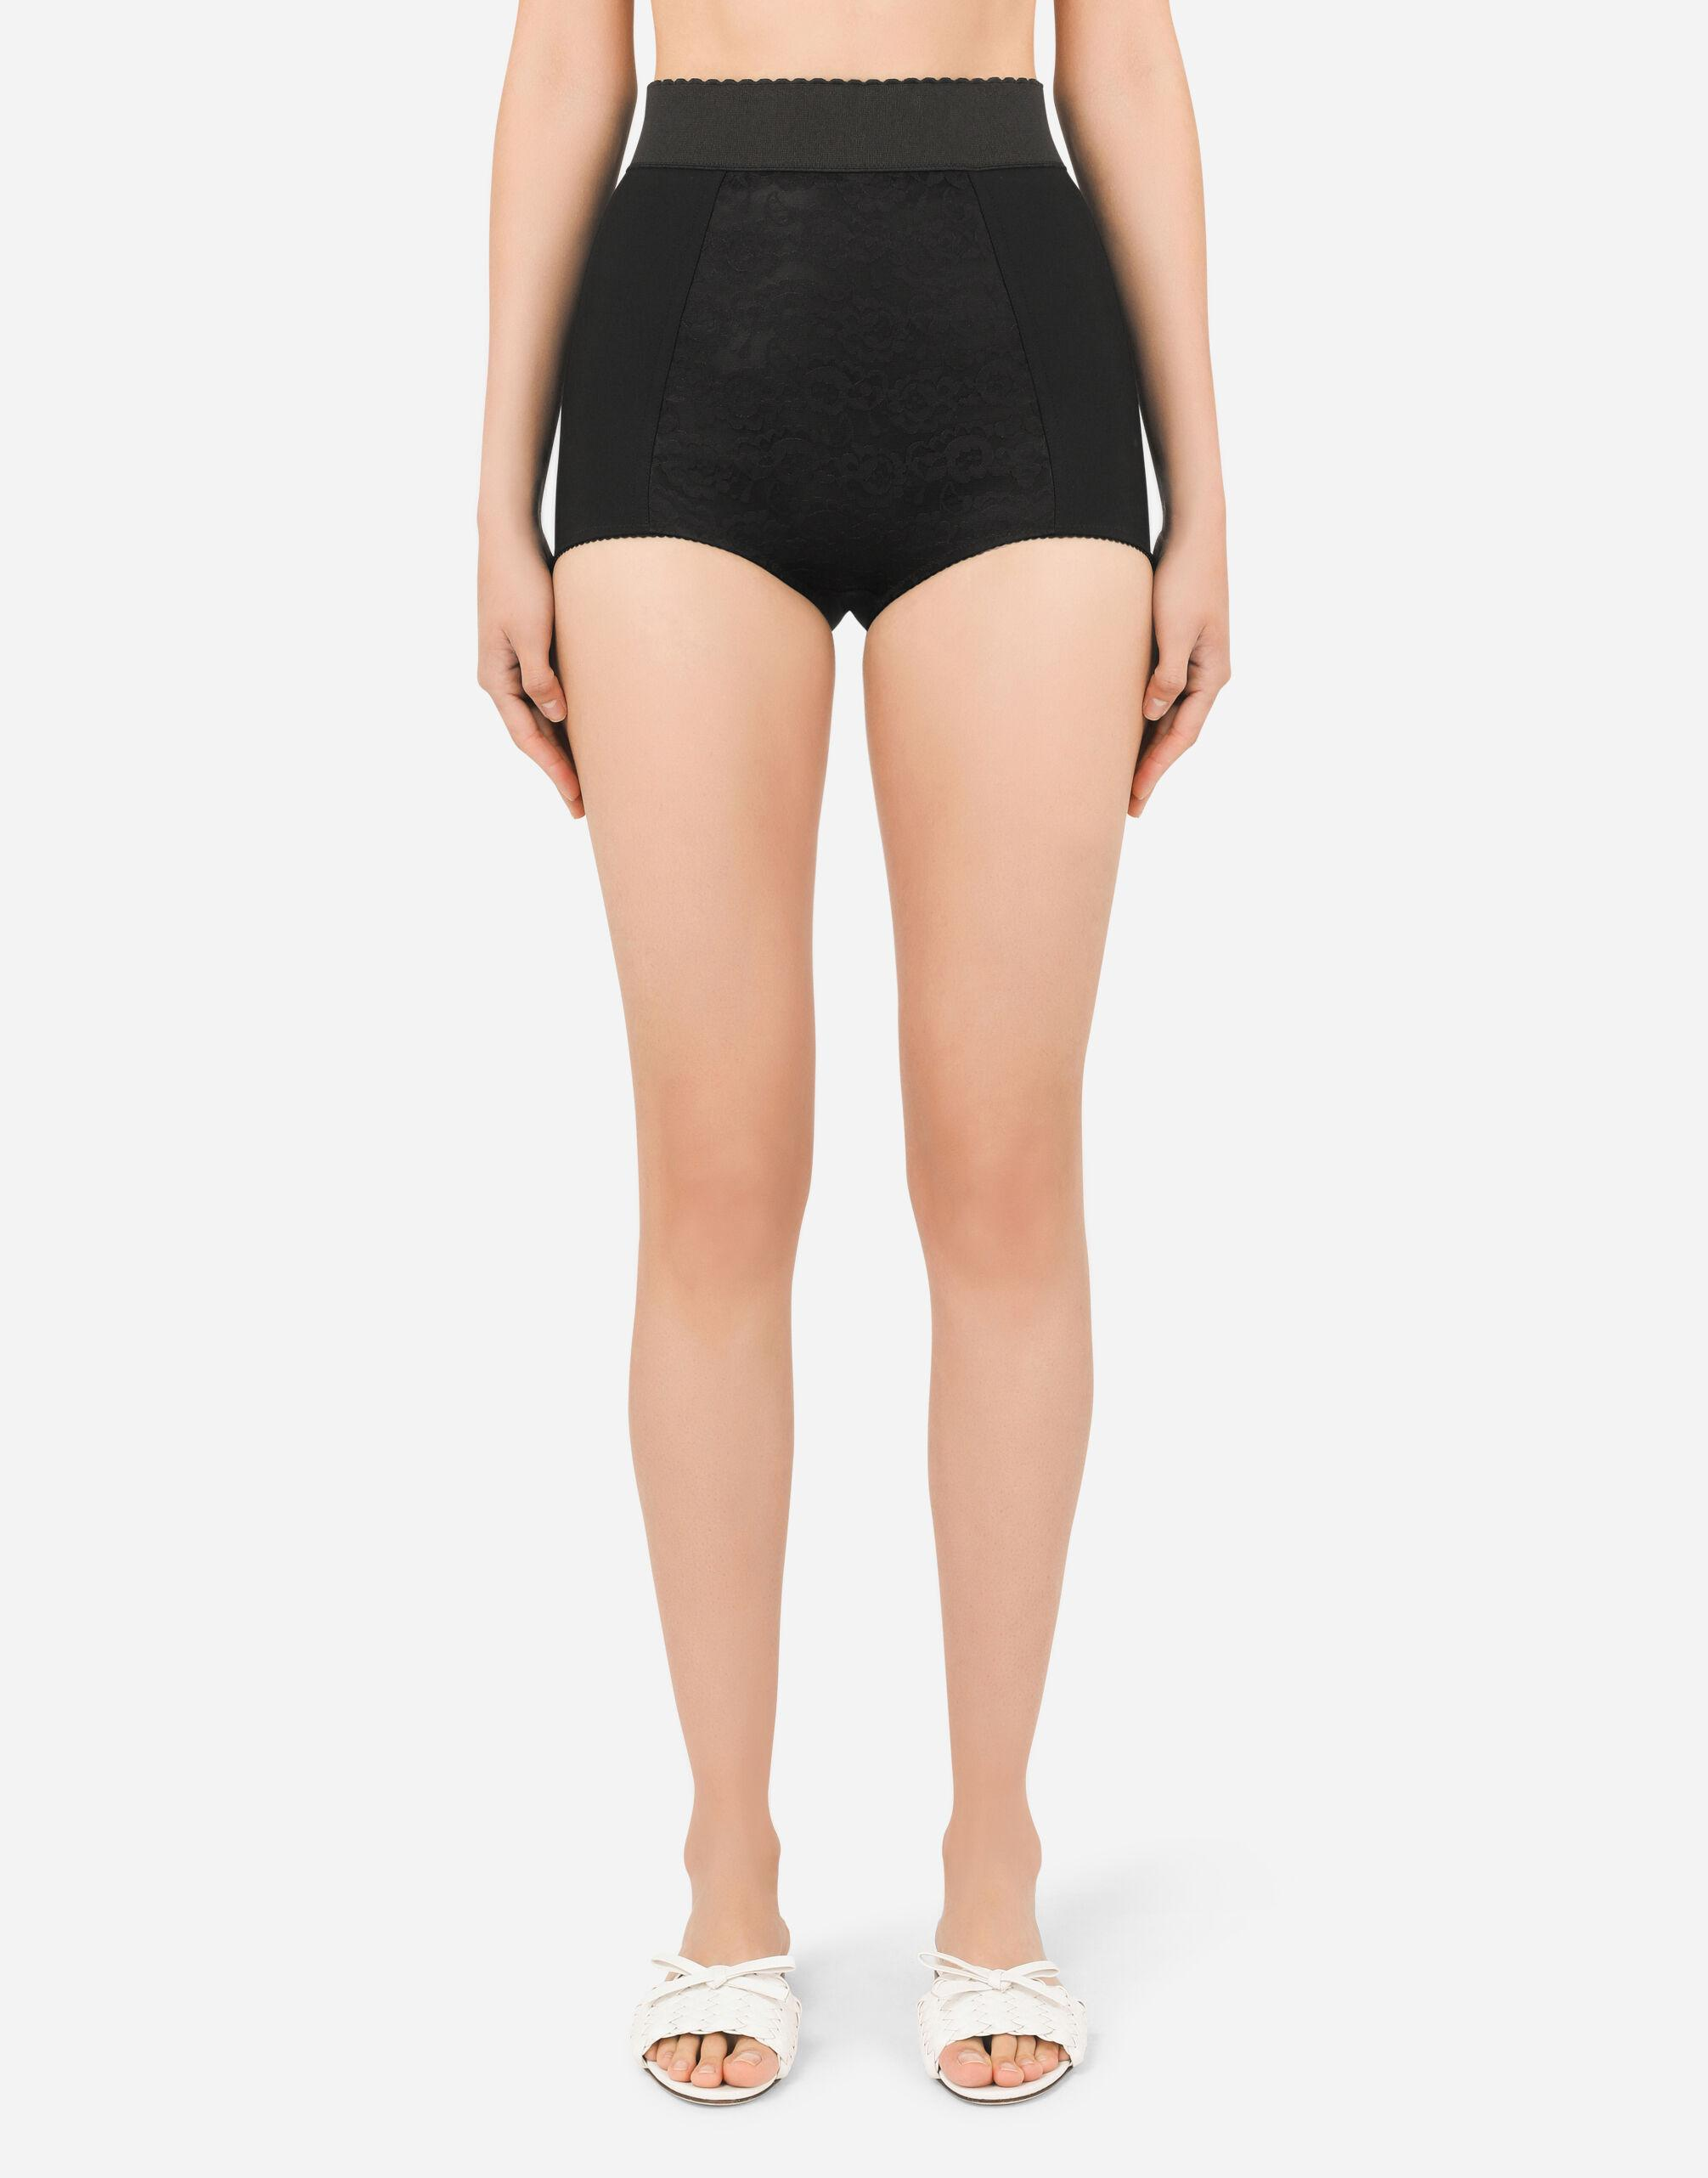 High-waisted shaper panties in jacquard and satin